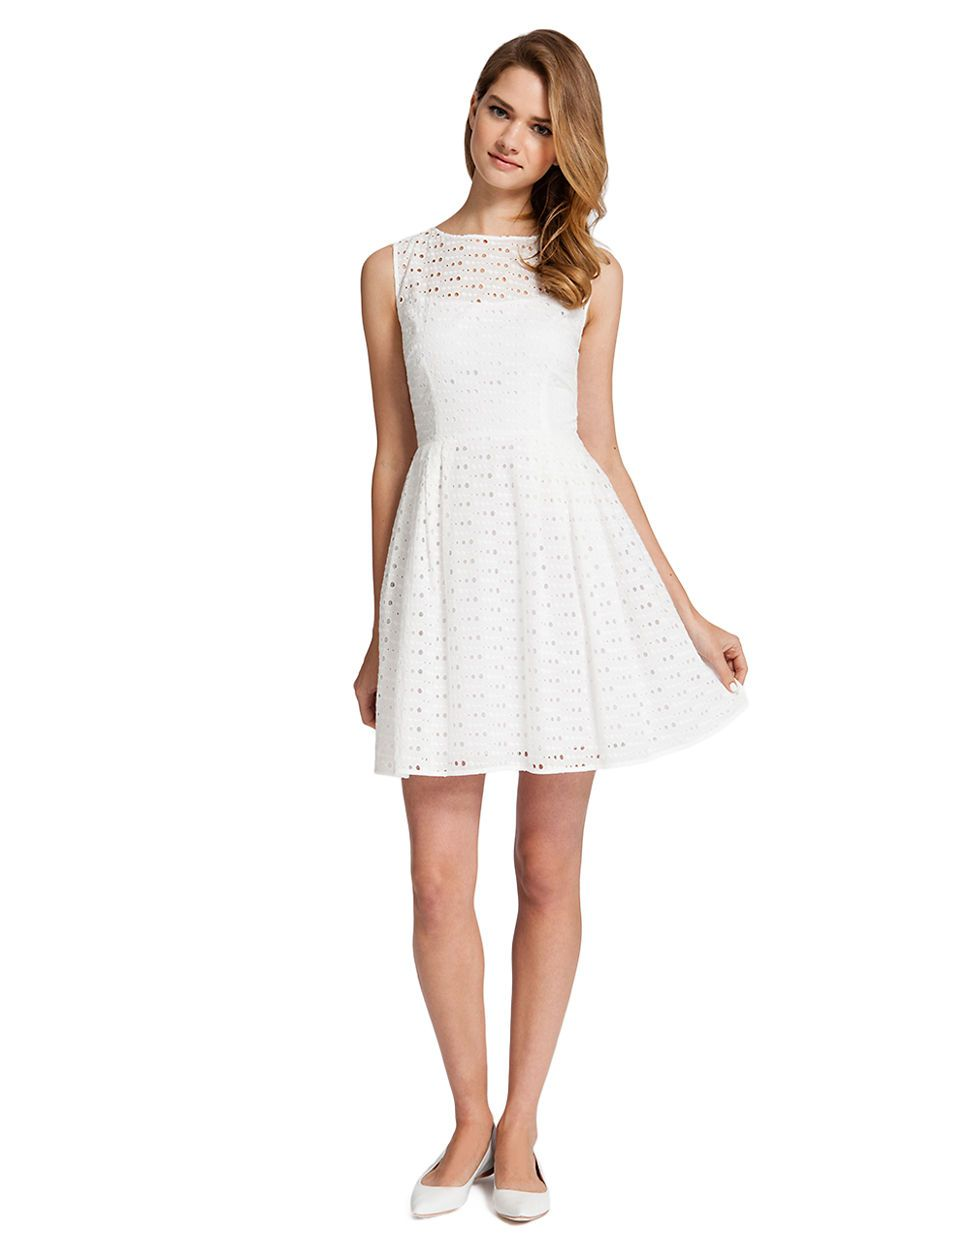 d9664448ac3 White Dress Lord And Taylor - Data Dynamic AG